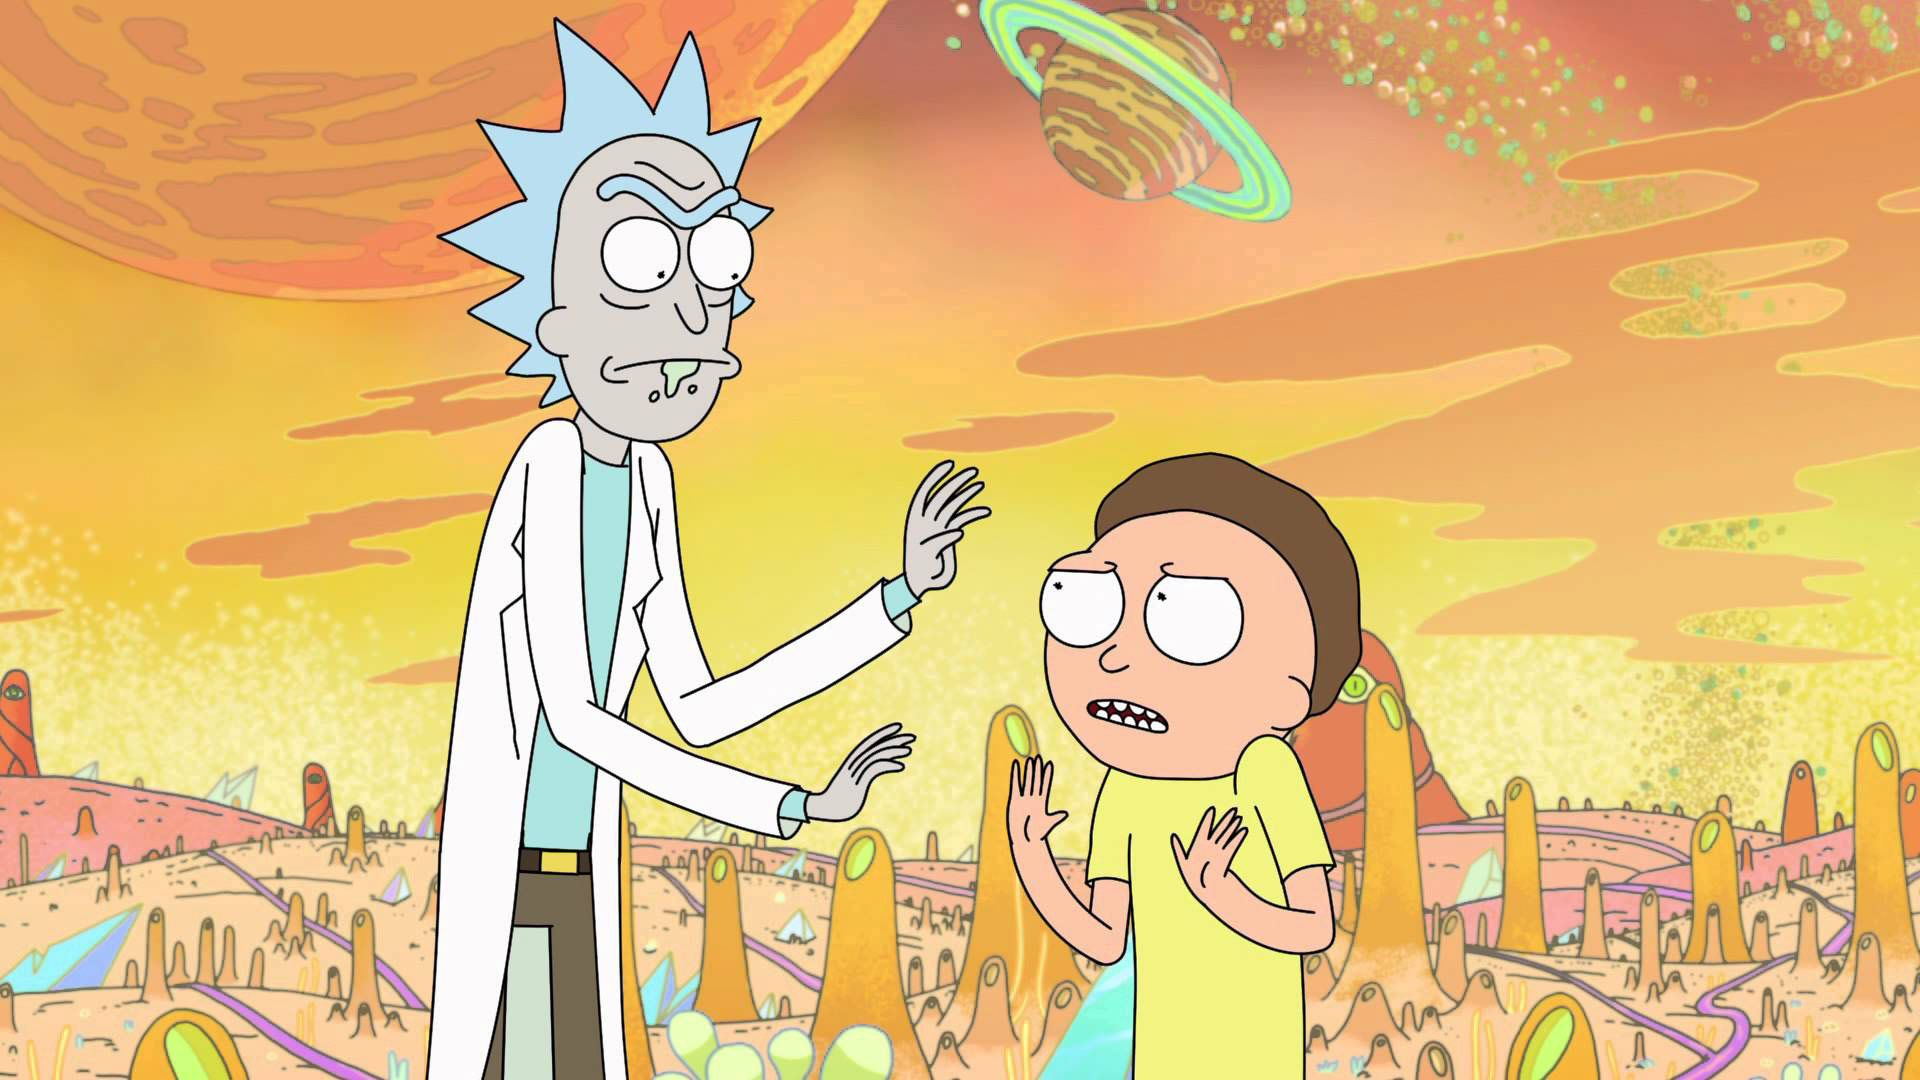 Best Rick And Morty Quotes Rick And Morty' Adult Swim Season 3 Review